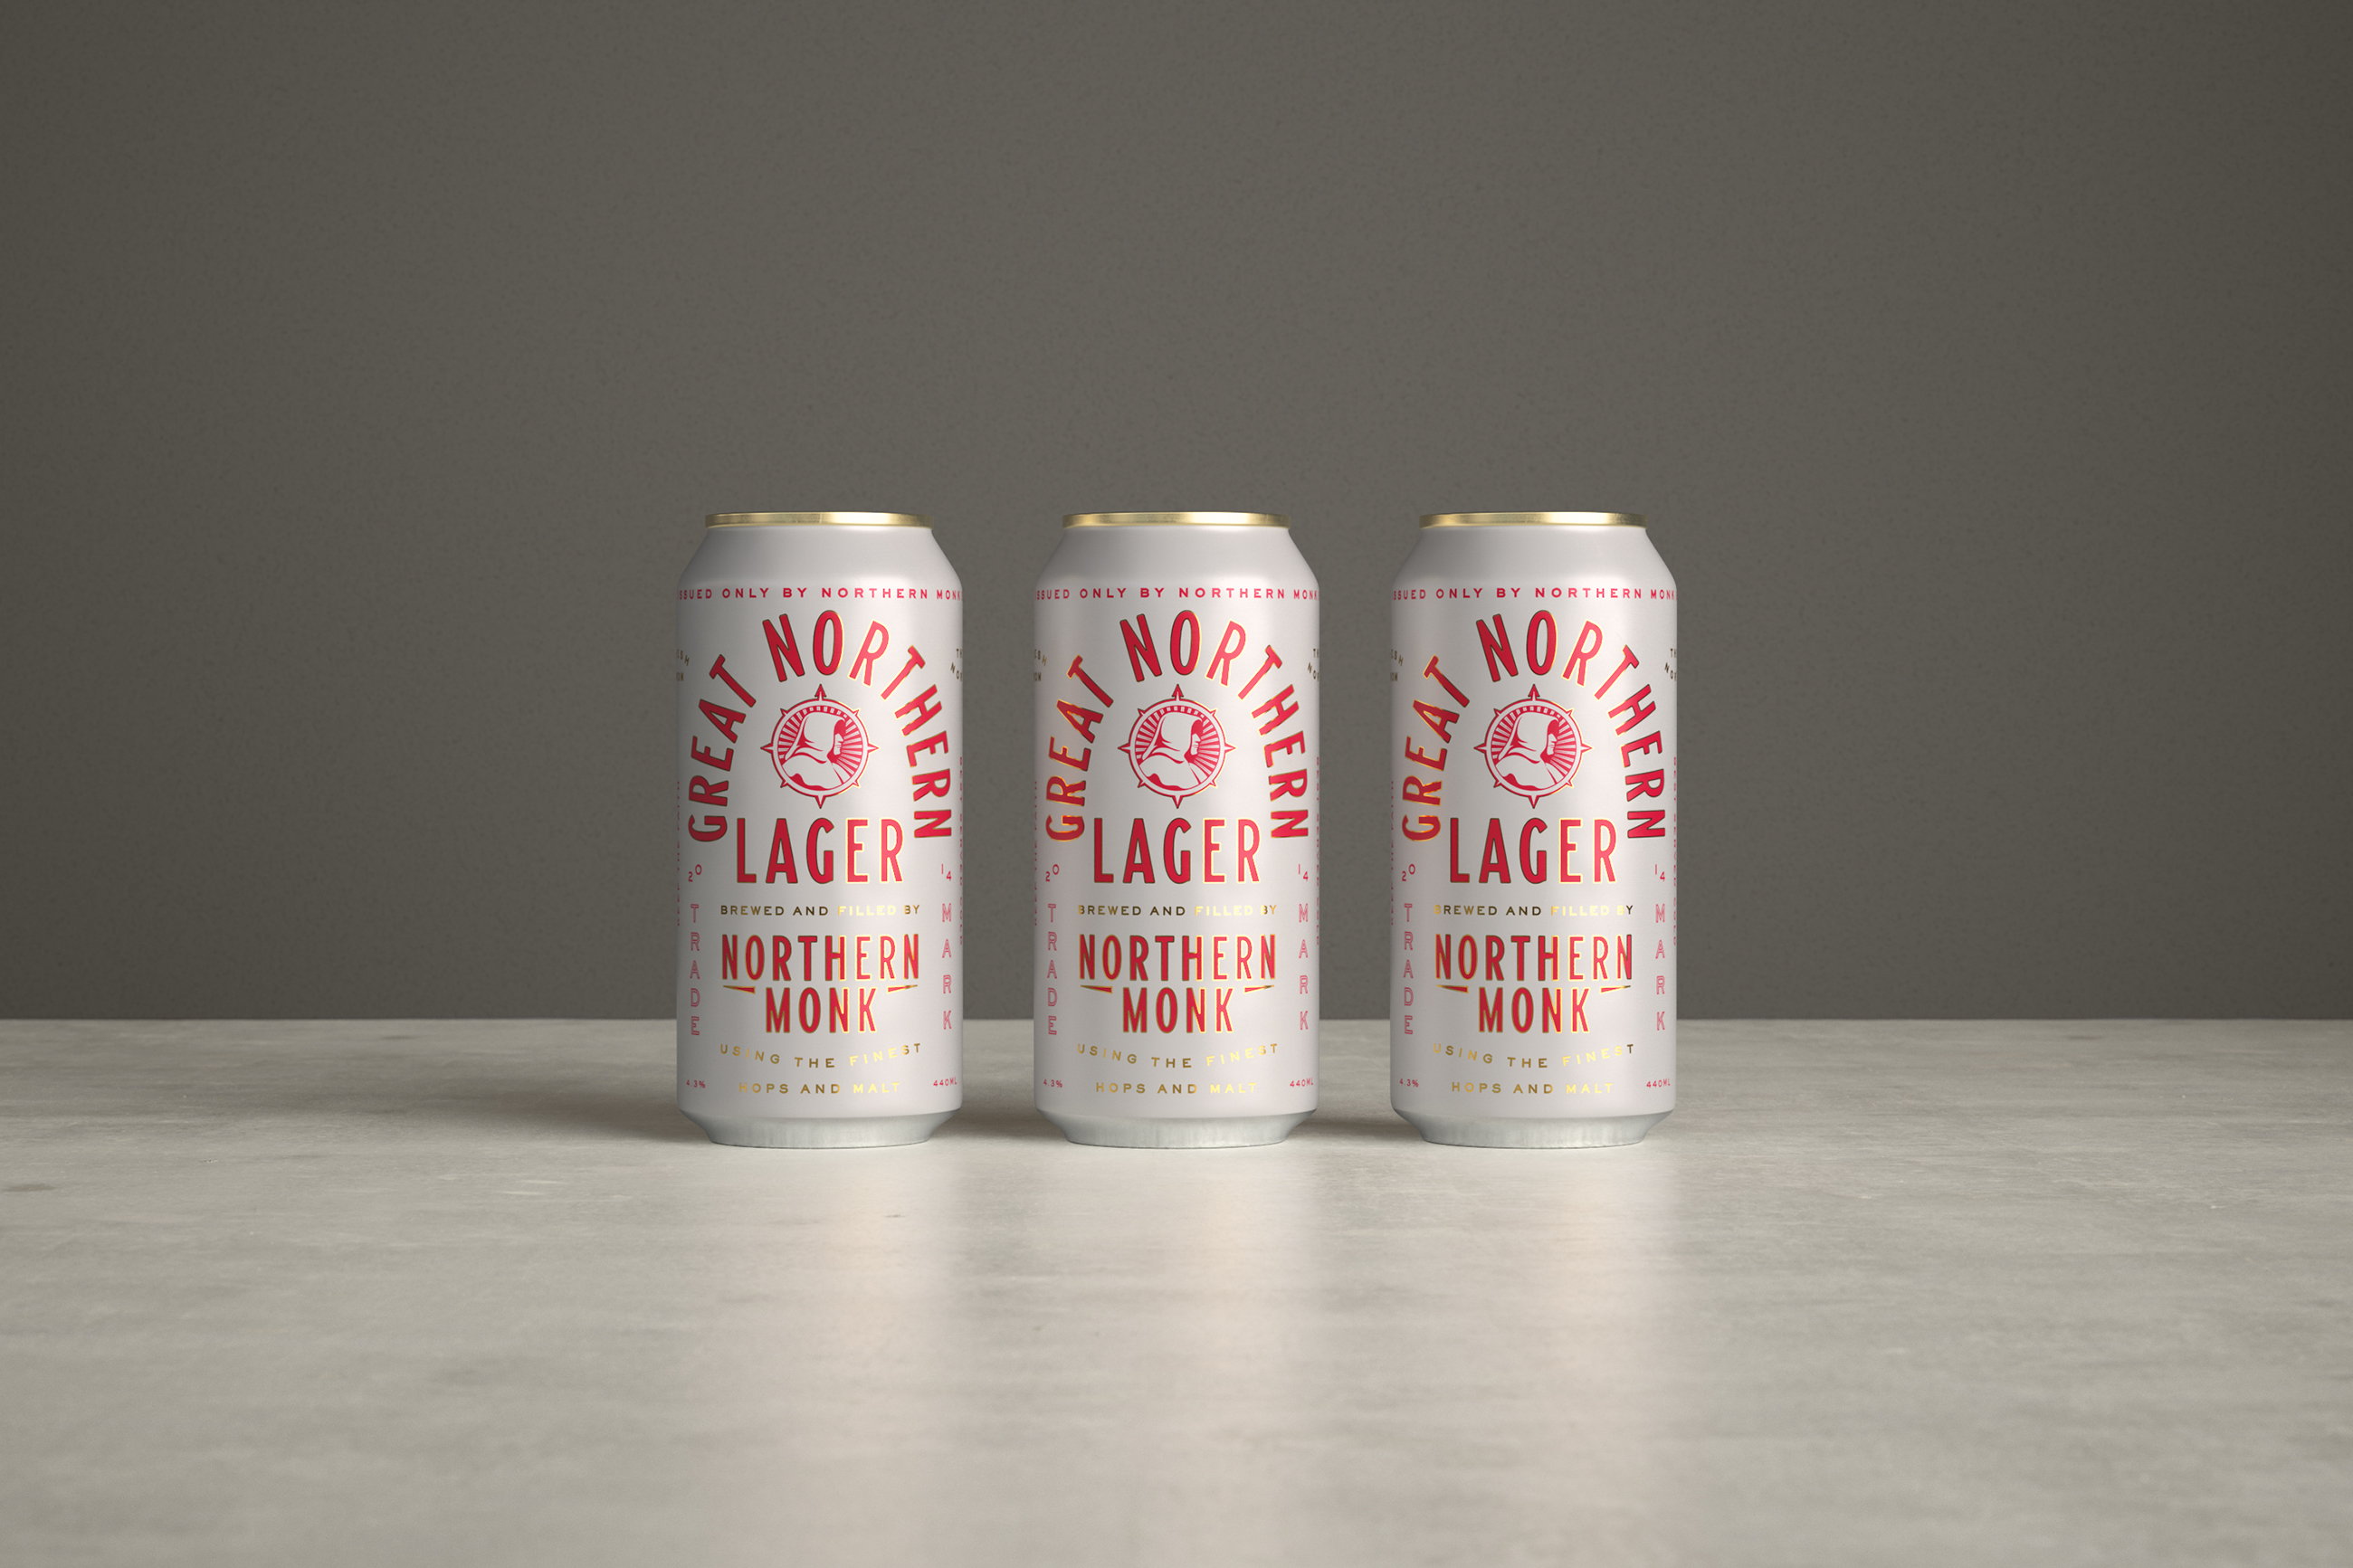 Classic Design for Northern Monk's Classic Lager